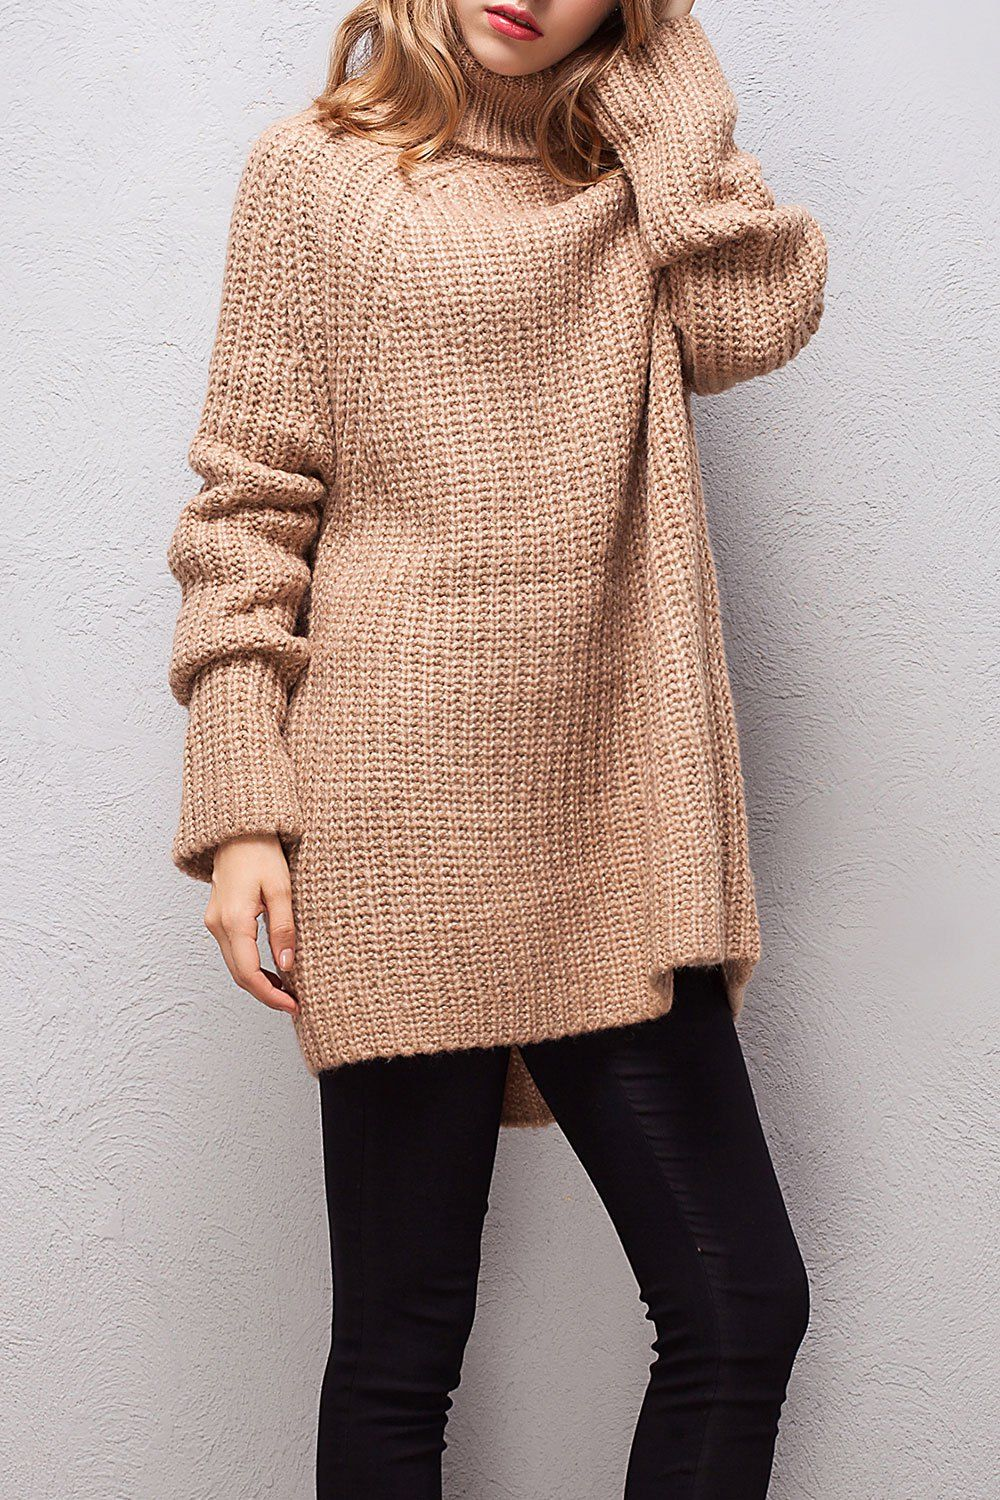 Turtleneck High Low Long Sweater | Long sweaters, High low and Clothes